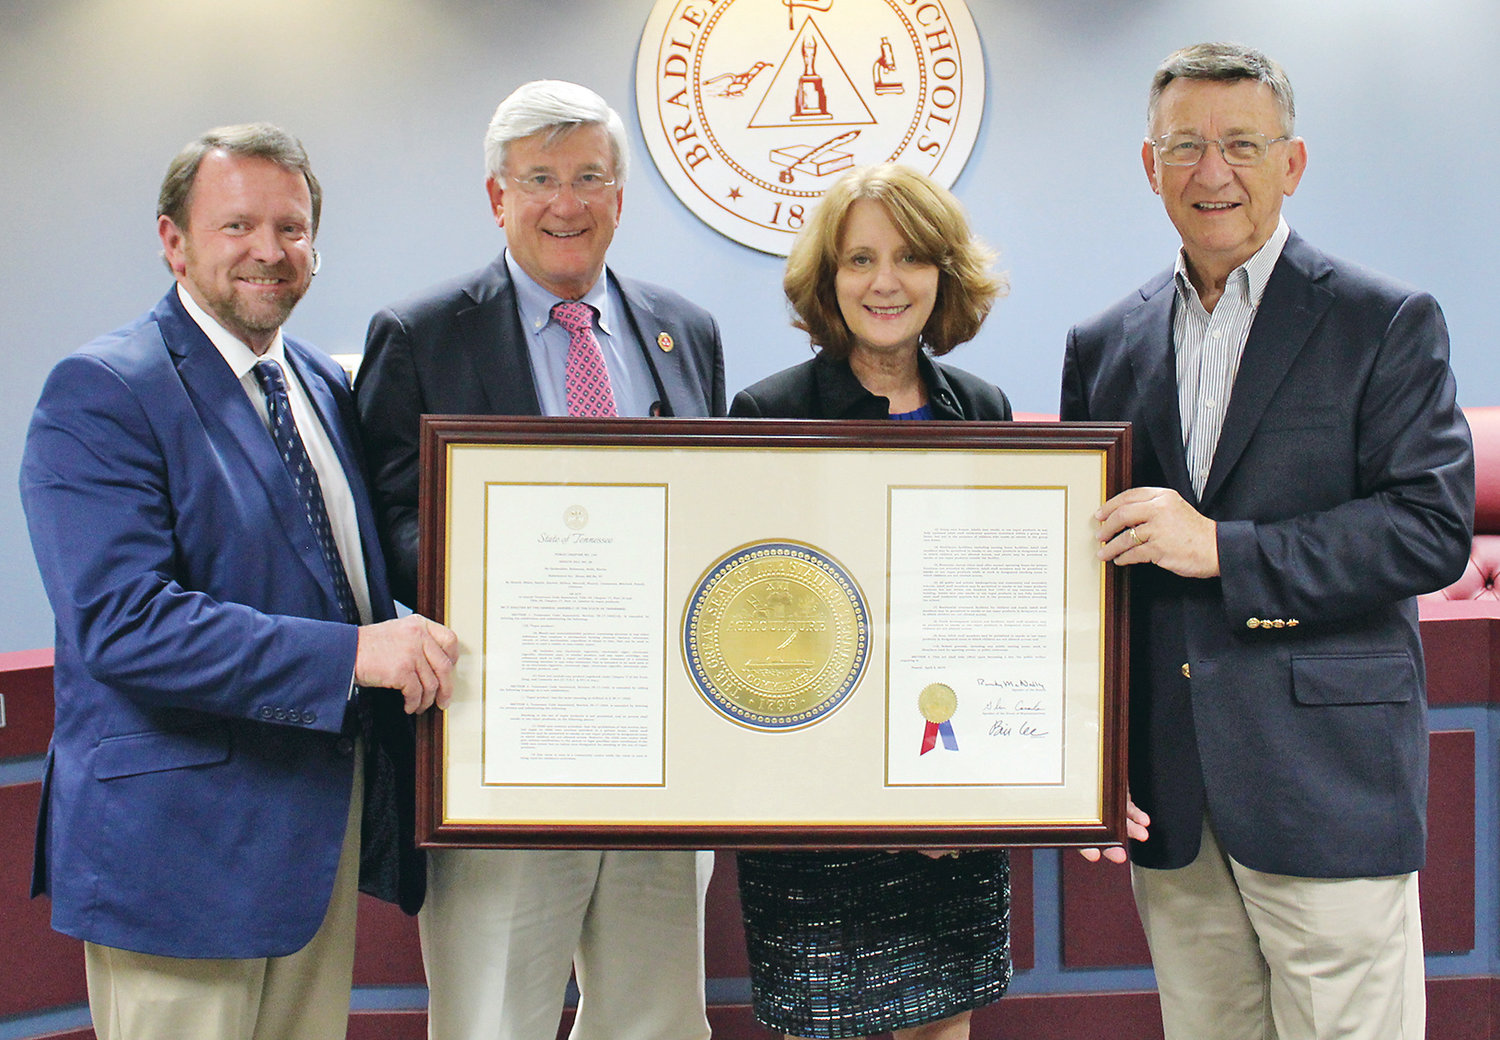 BRADLEY COUNTY SCHOOLS Director Dr. Linda Cash and Bradley County School Board Chairman Troy Weathers, far left, stand with state Sen. Todd Gardenhire, second from left, and state Rep. Dan Howell, fourth from left, after they were presented with a framed text of a vaping bill signed by Tennessee Gov. Bill Lee last month.